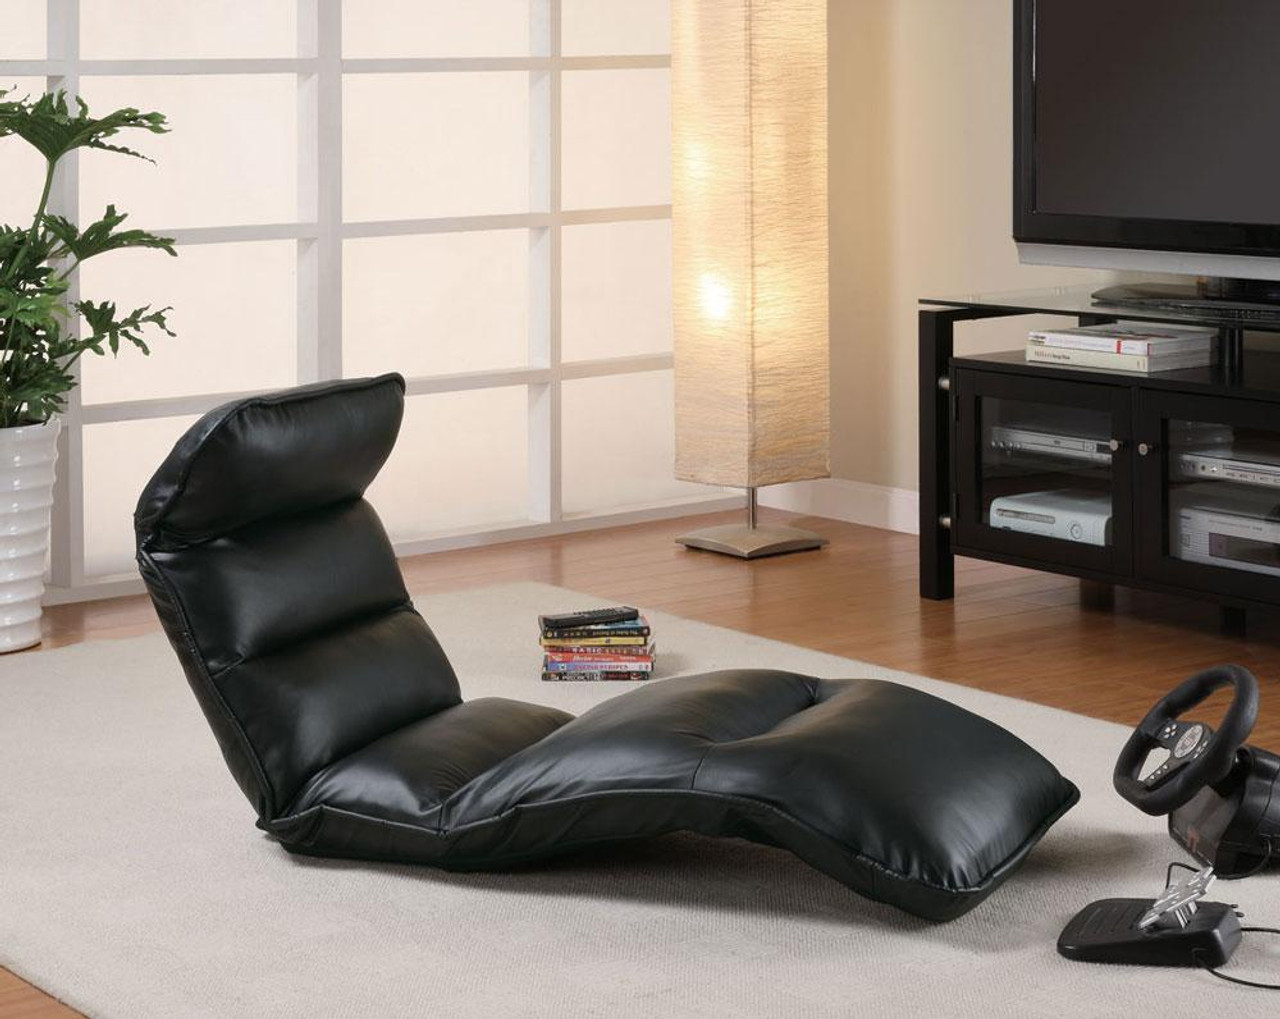 Leather Lounge Jerrel Black Leather Lounge Chair Padded Seat